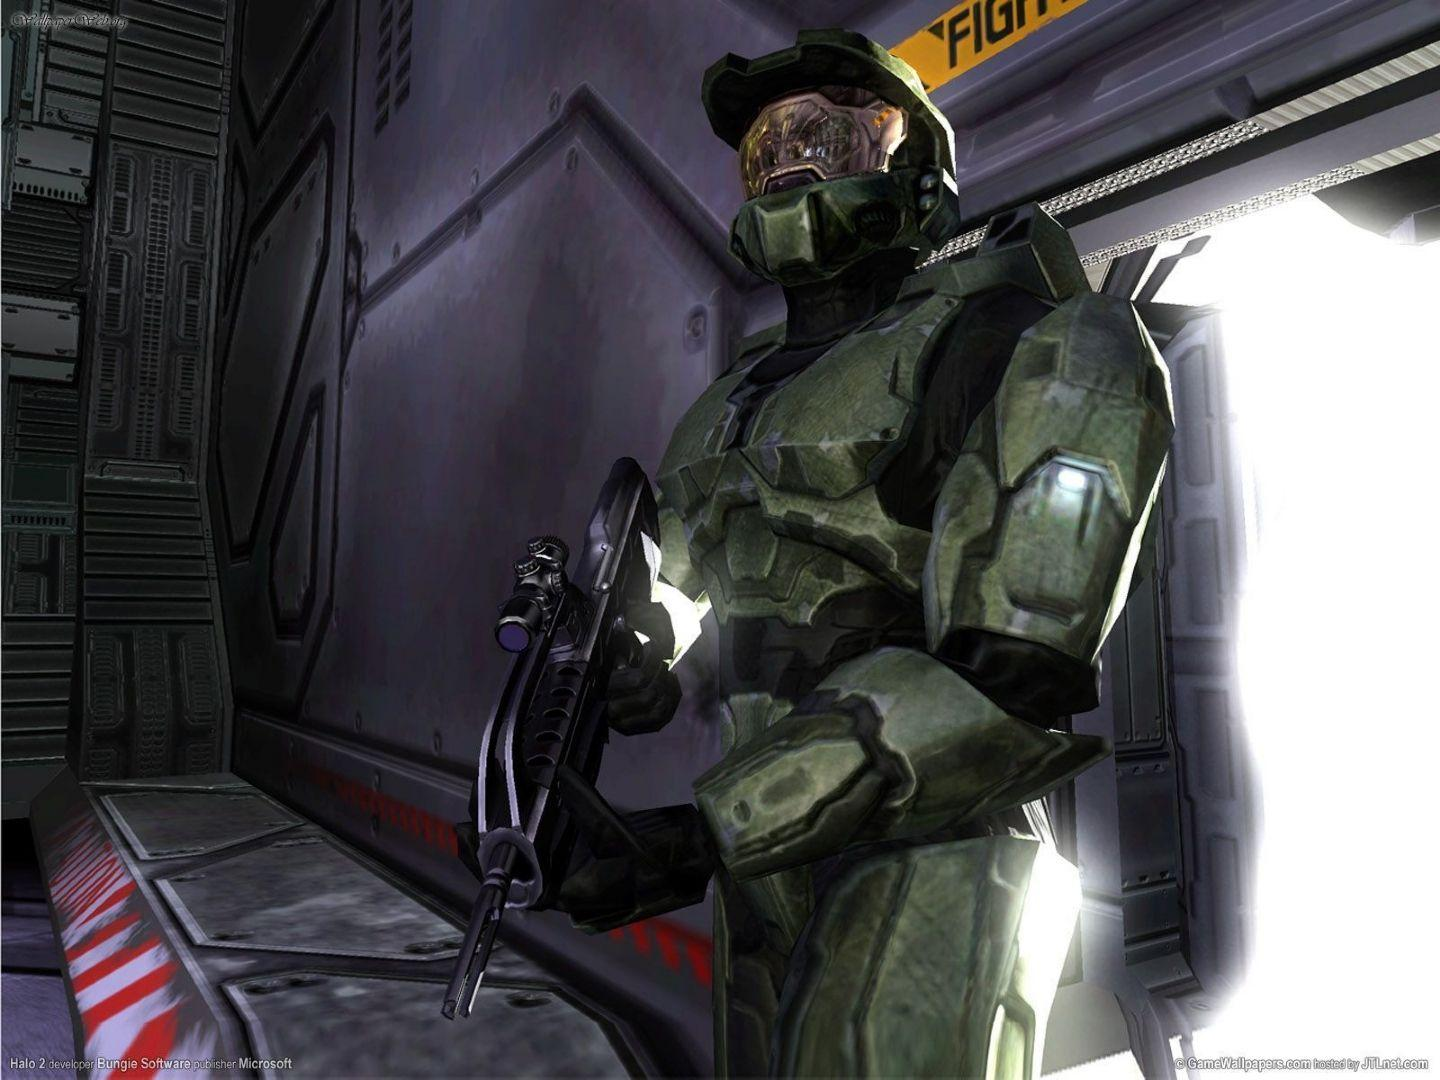 Games: Halo 2, picture nr. 29728